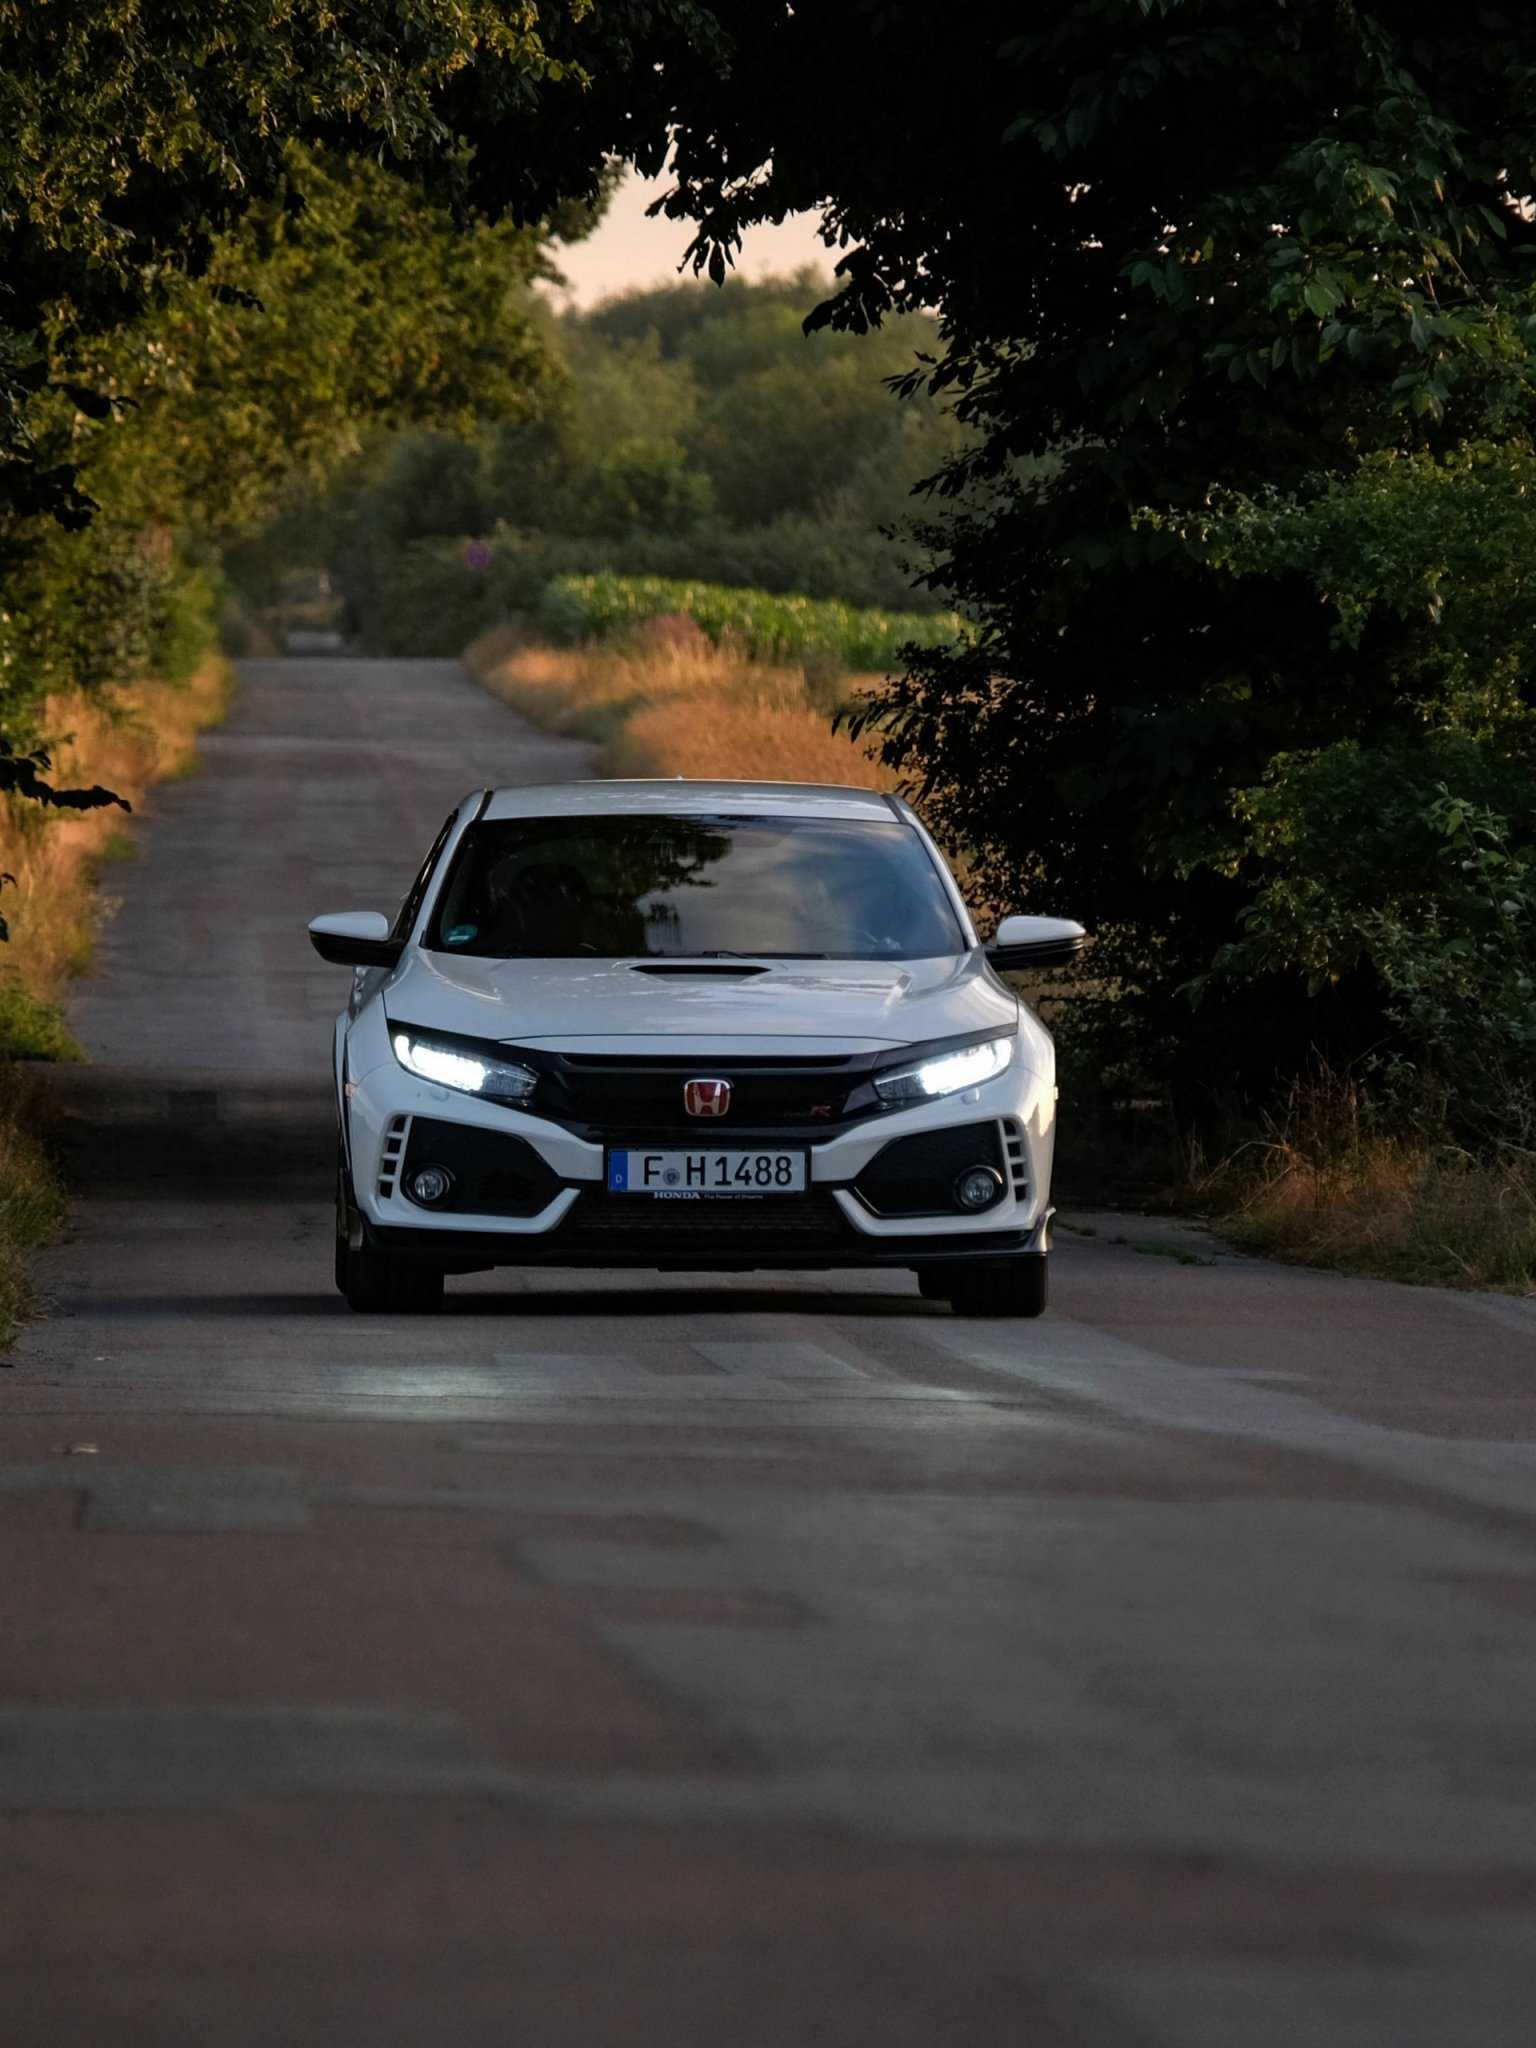 Iphone Honda Civic Type R Wallpaper Kolpaper Awesome Free Hd Wallpapers